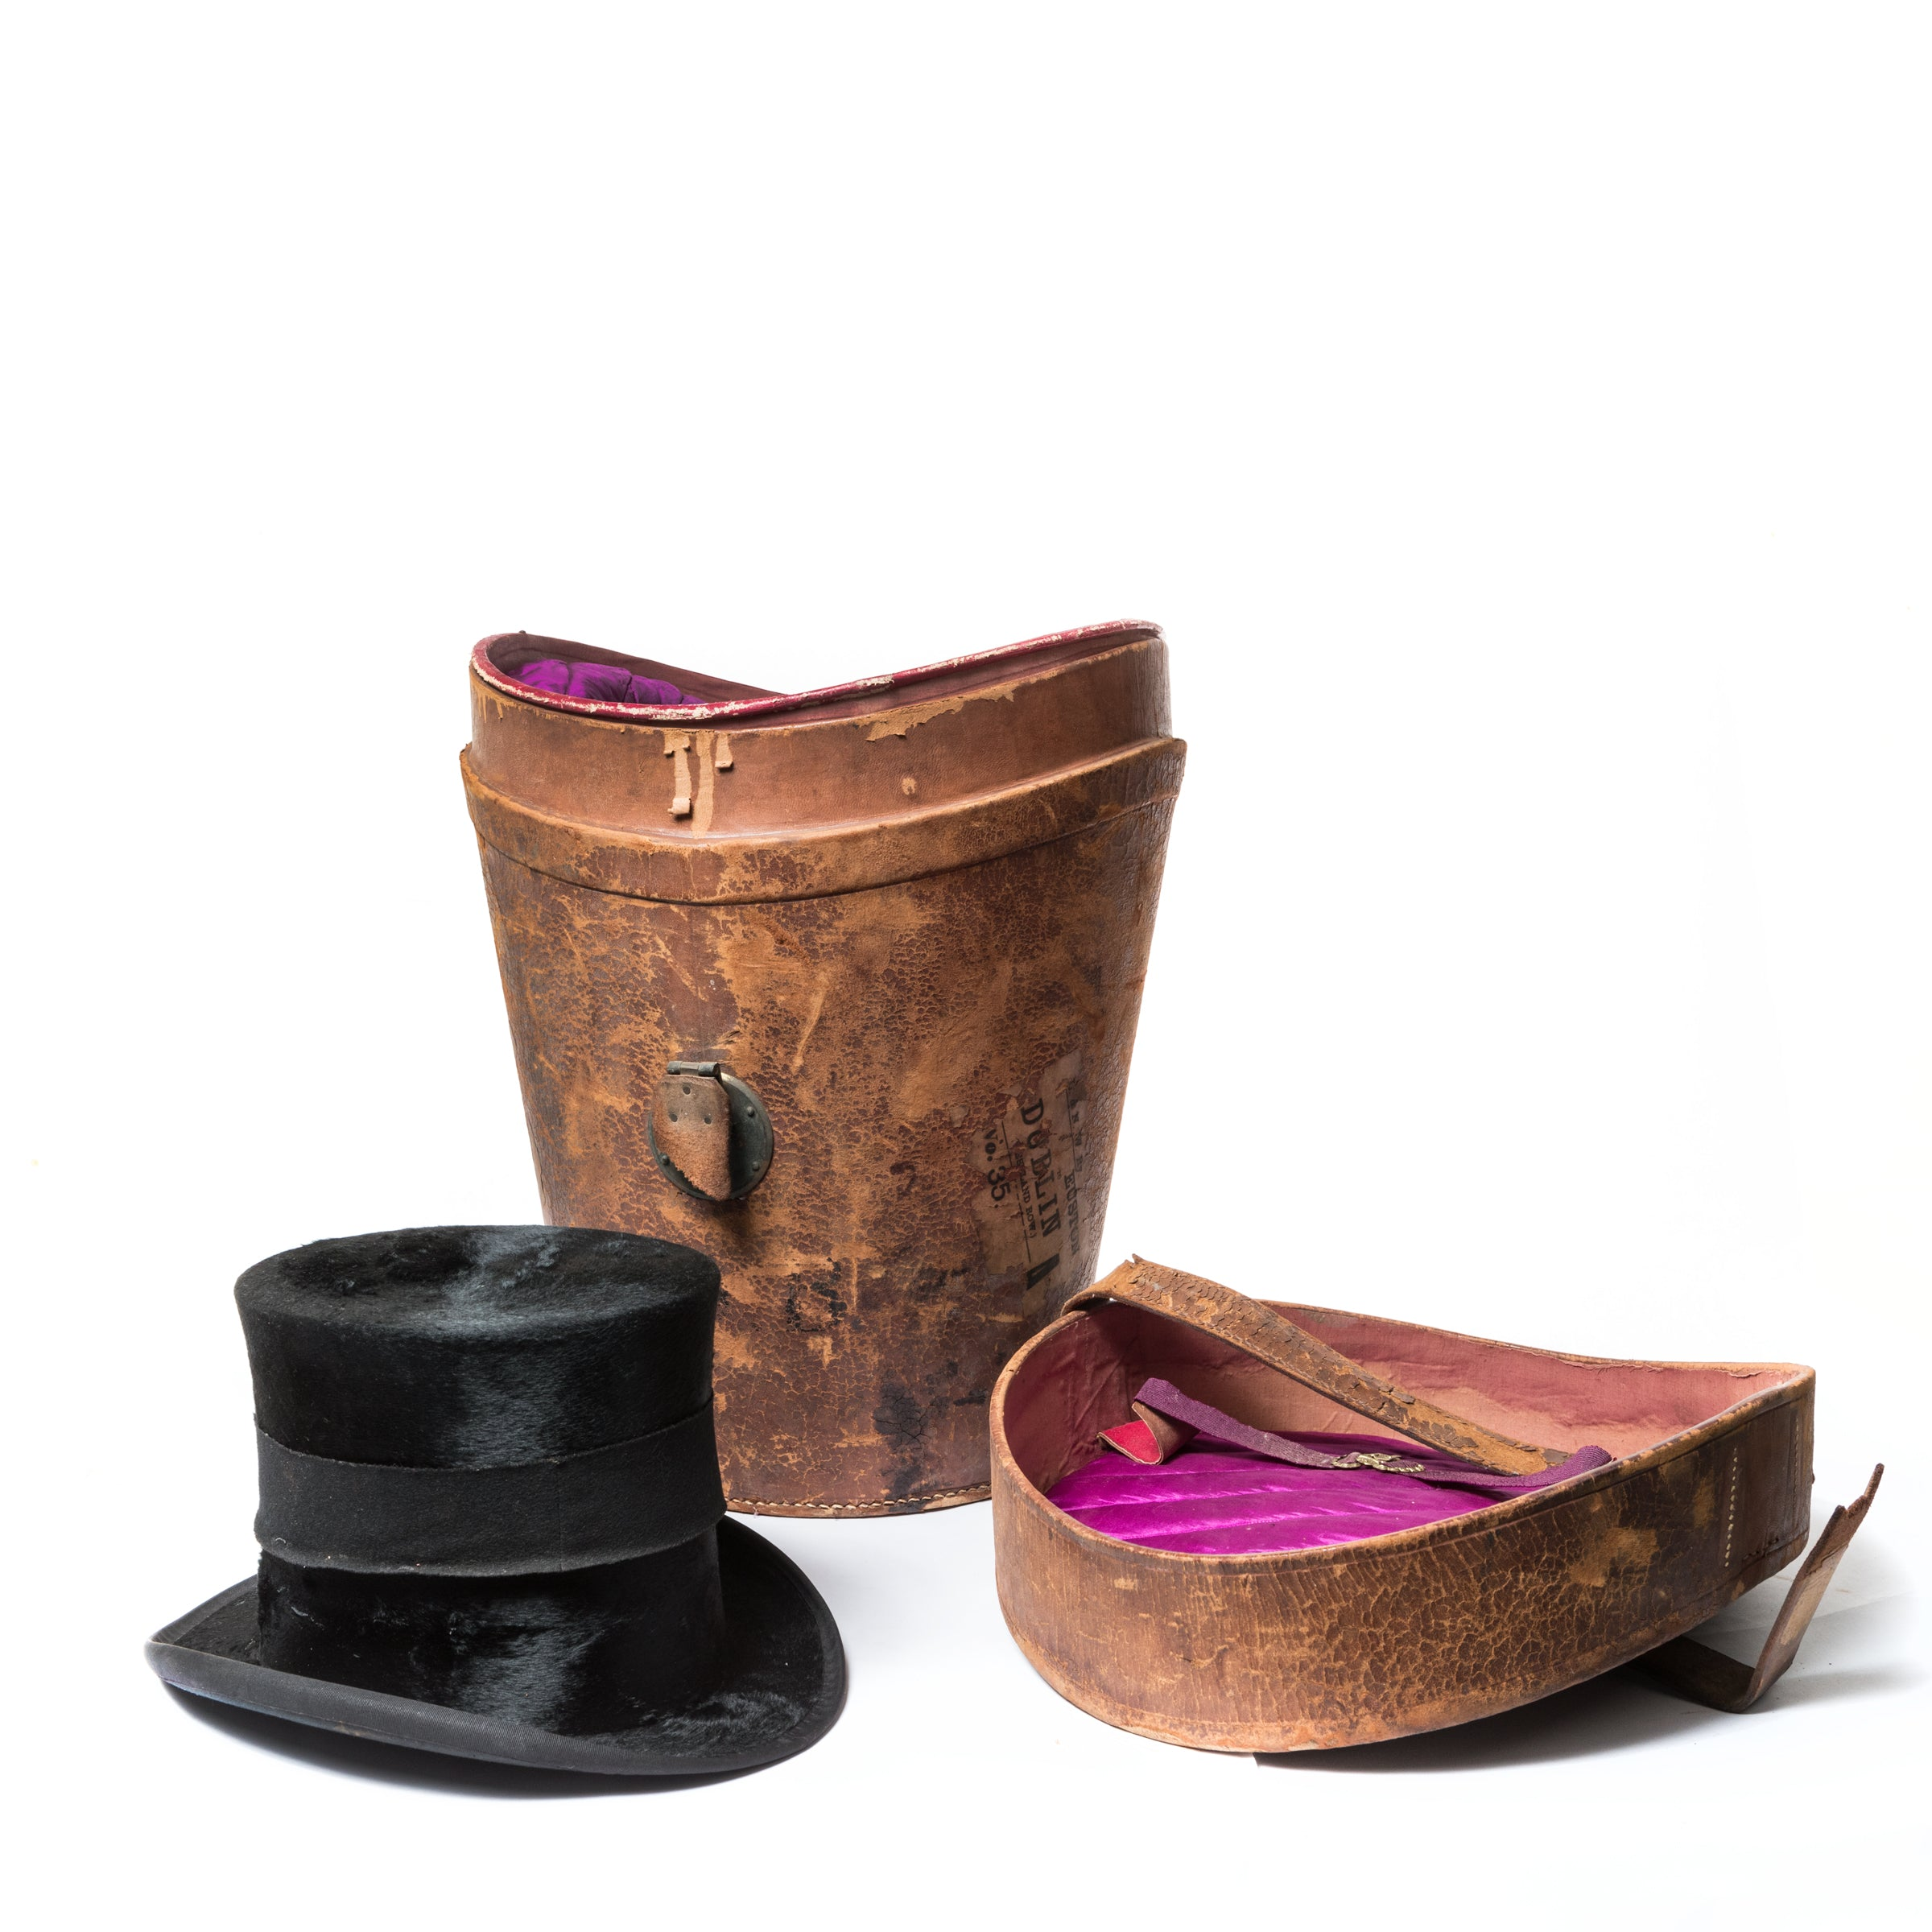 Antique Top Hat with Leather Hat Box